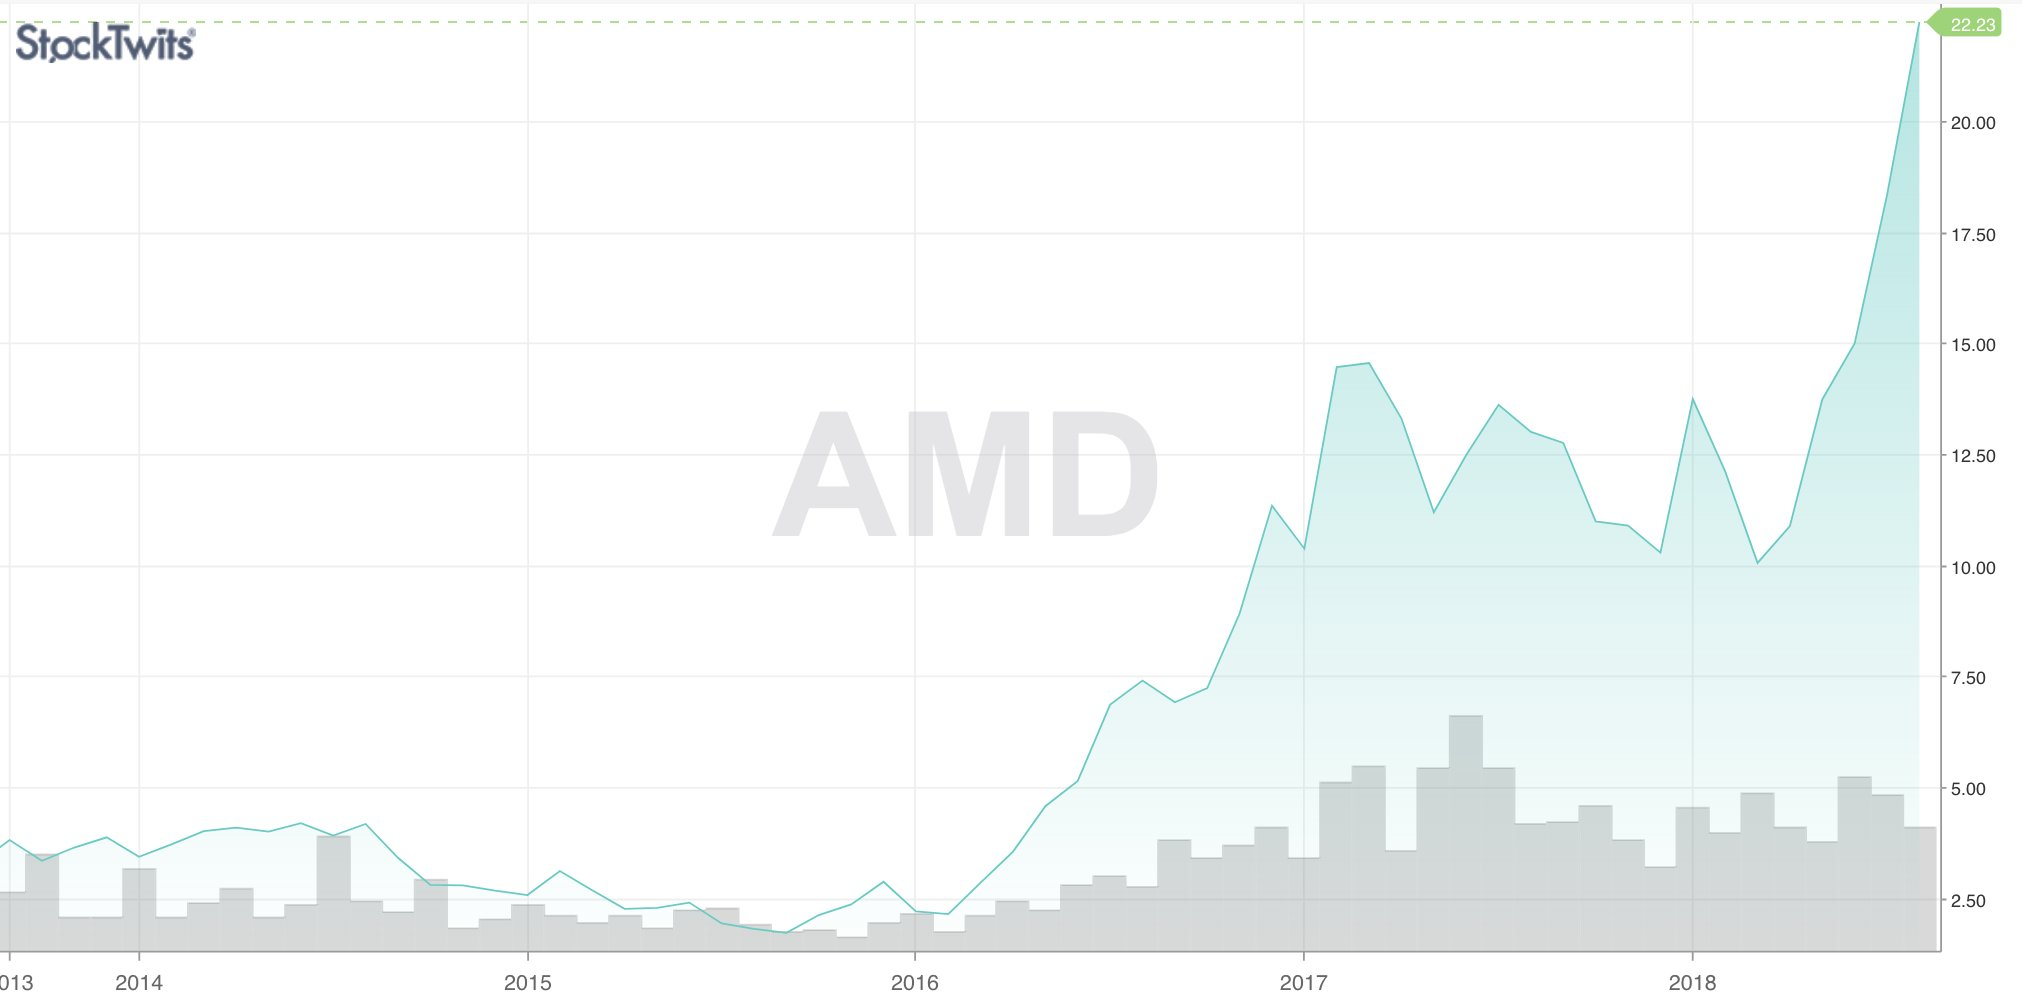 Stocktwits On Twitter Amd It Was Once The Stock Everyone Made Fun Of Now It S Popping Off It Just Traded At 22 Share These Are Its Highest Levels Since 2006 Over 132 000